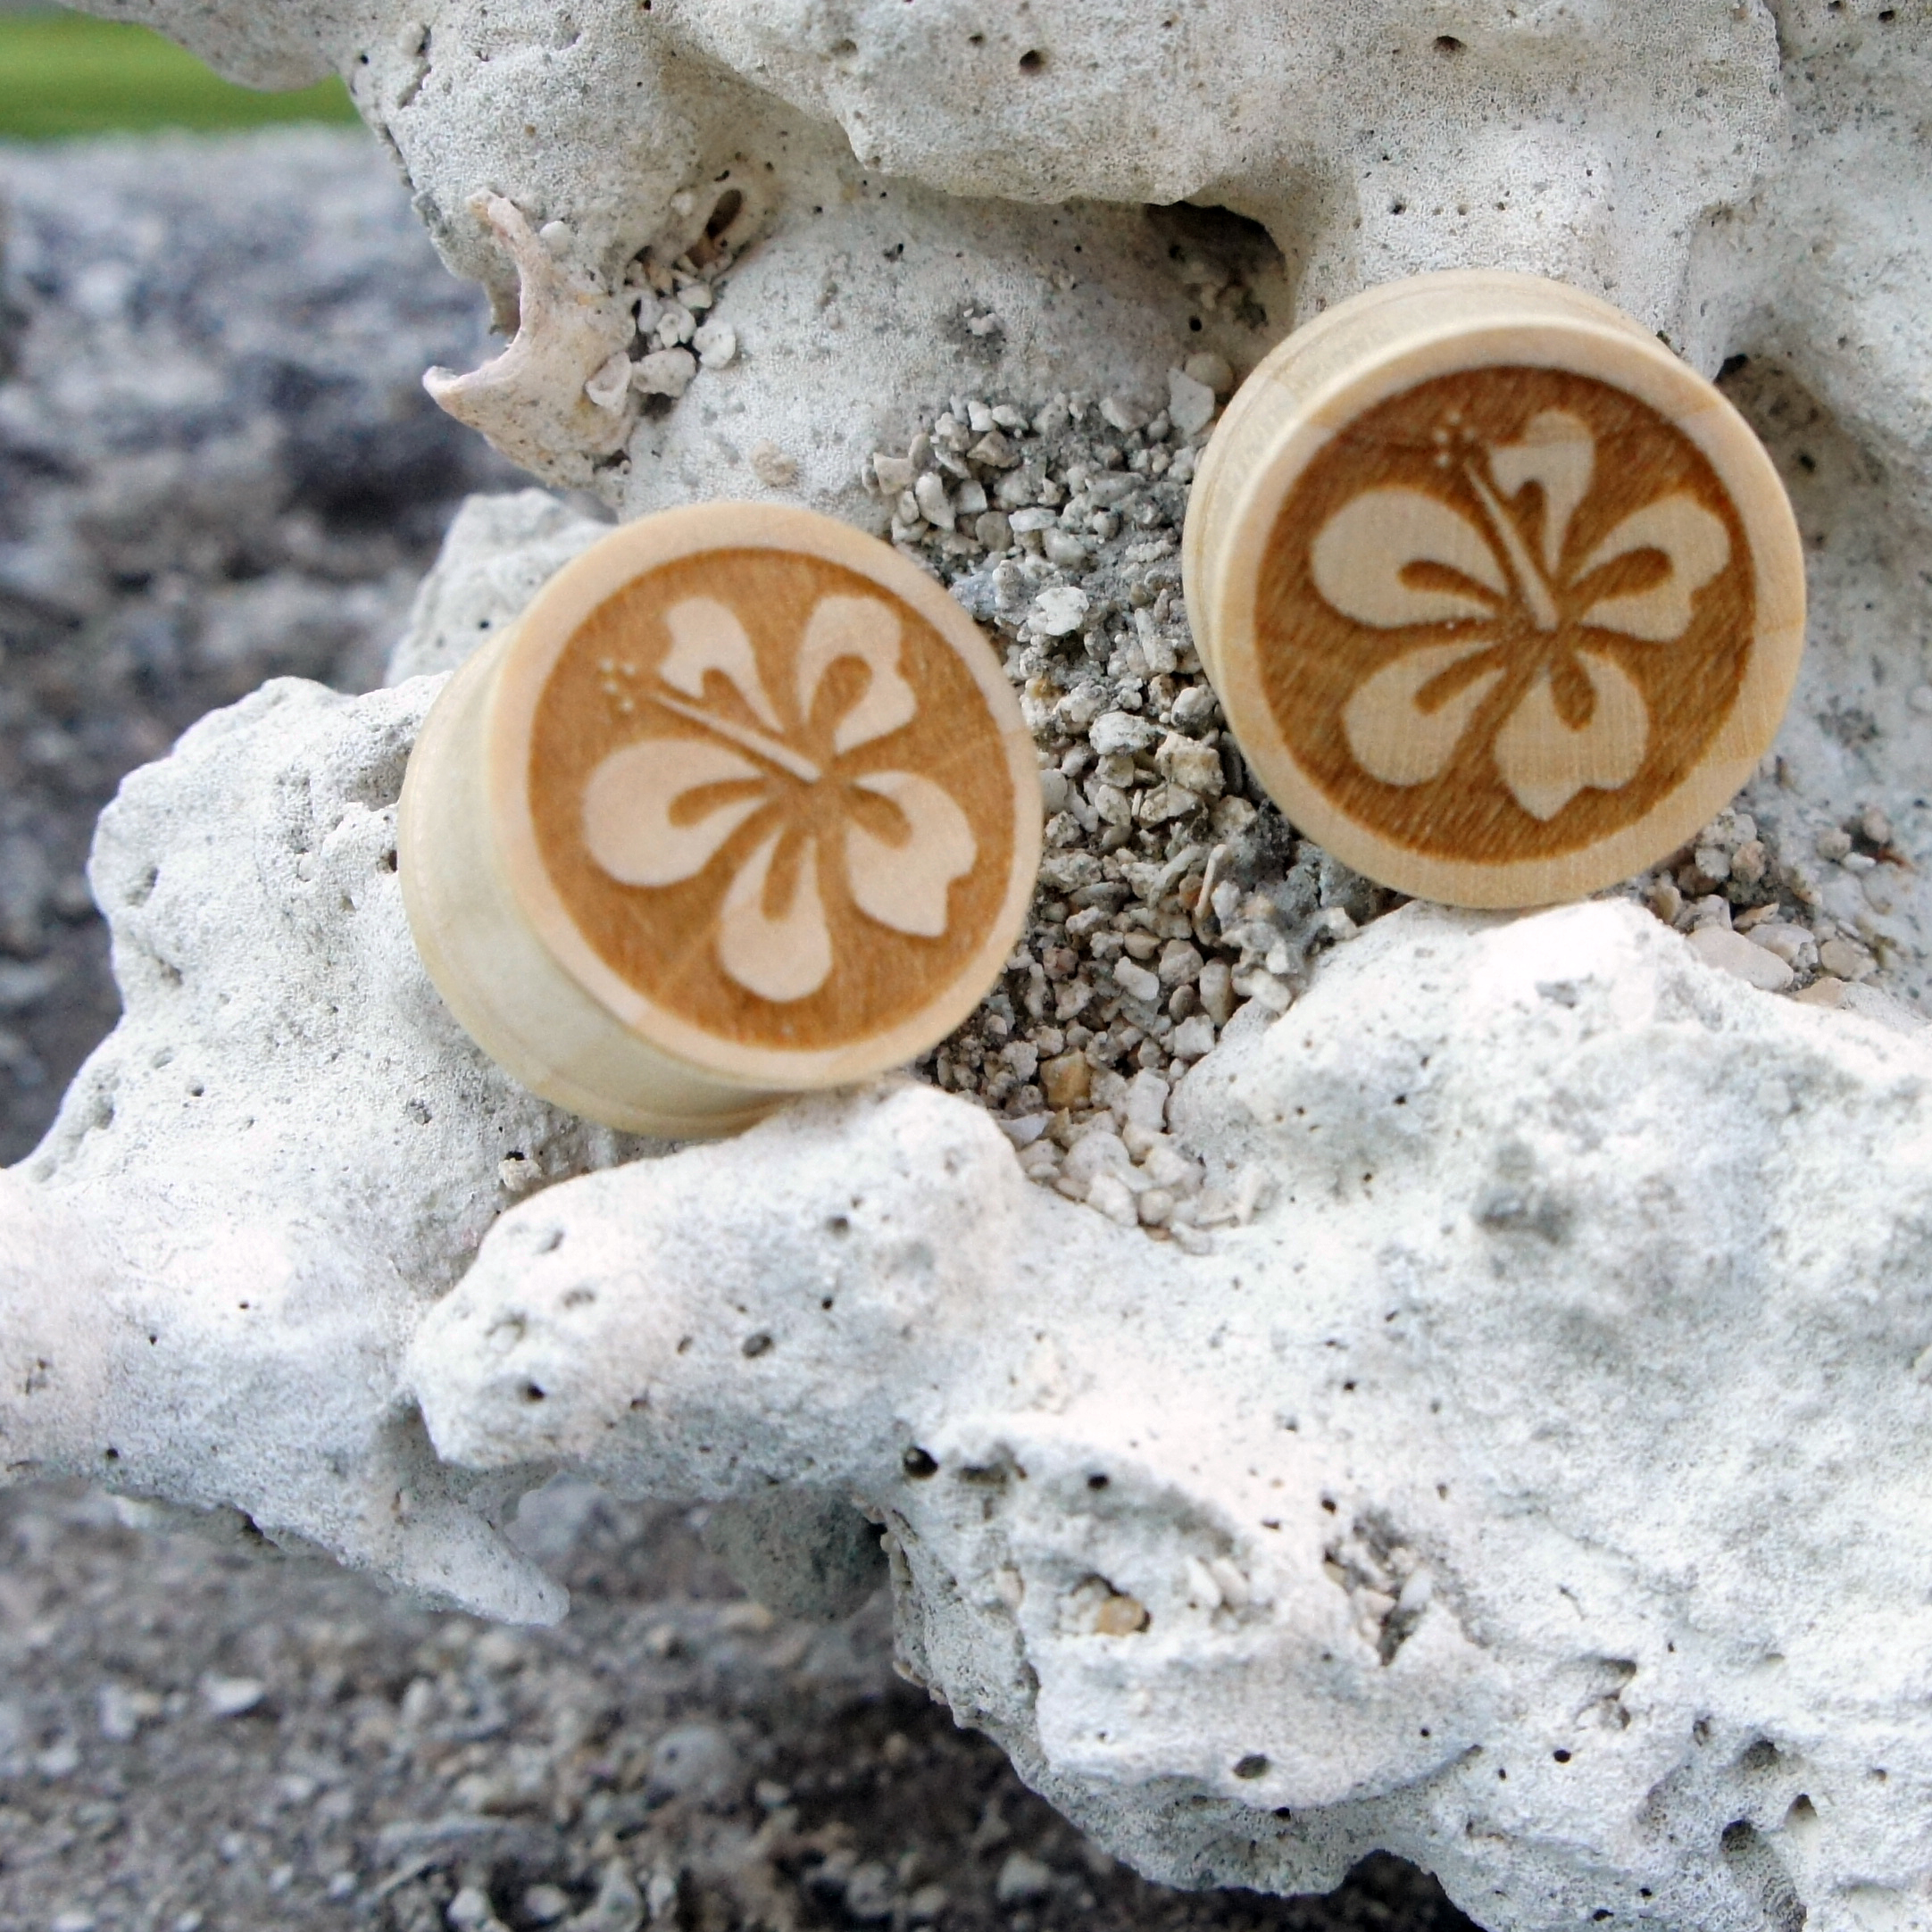 Hibiscus Floral Wood Straight Plug with Lipped Edges